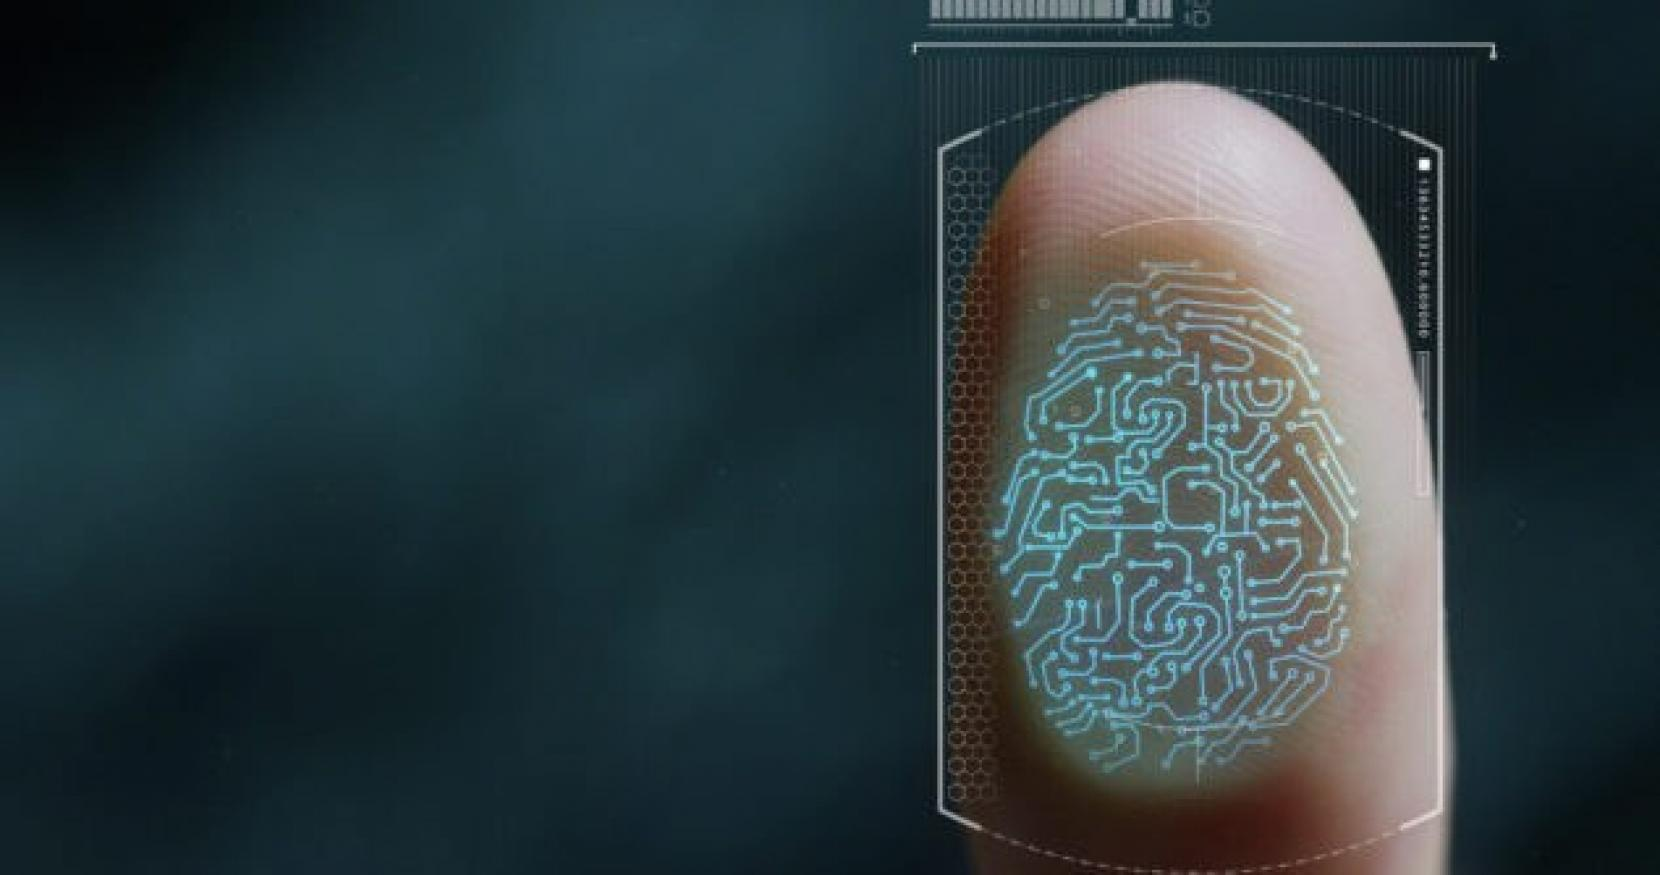 new survey on biometric technology shows consumers are ok with some